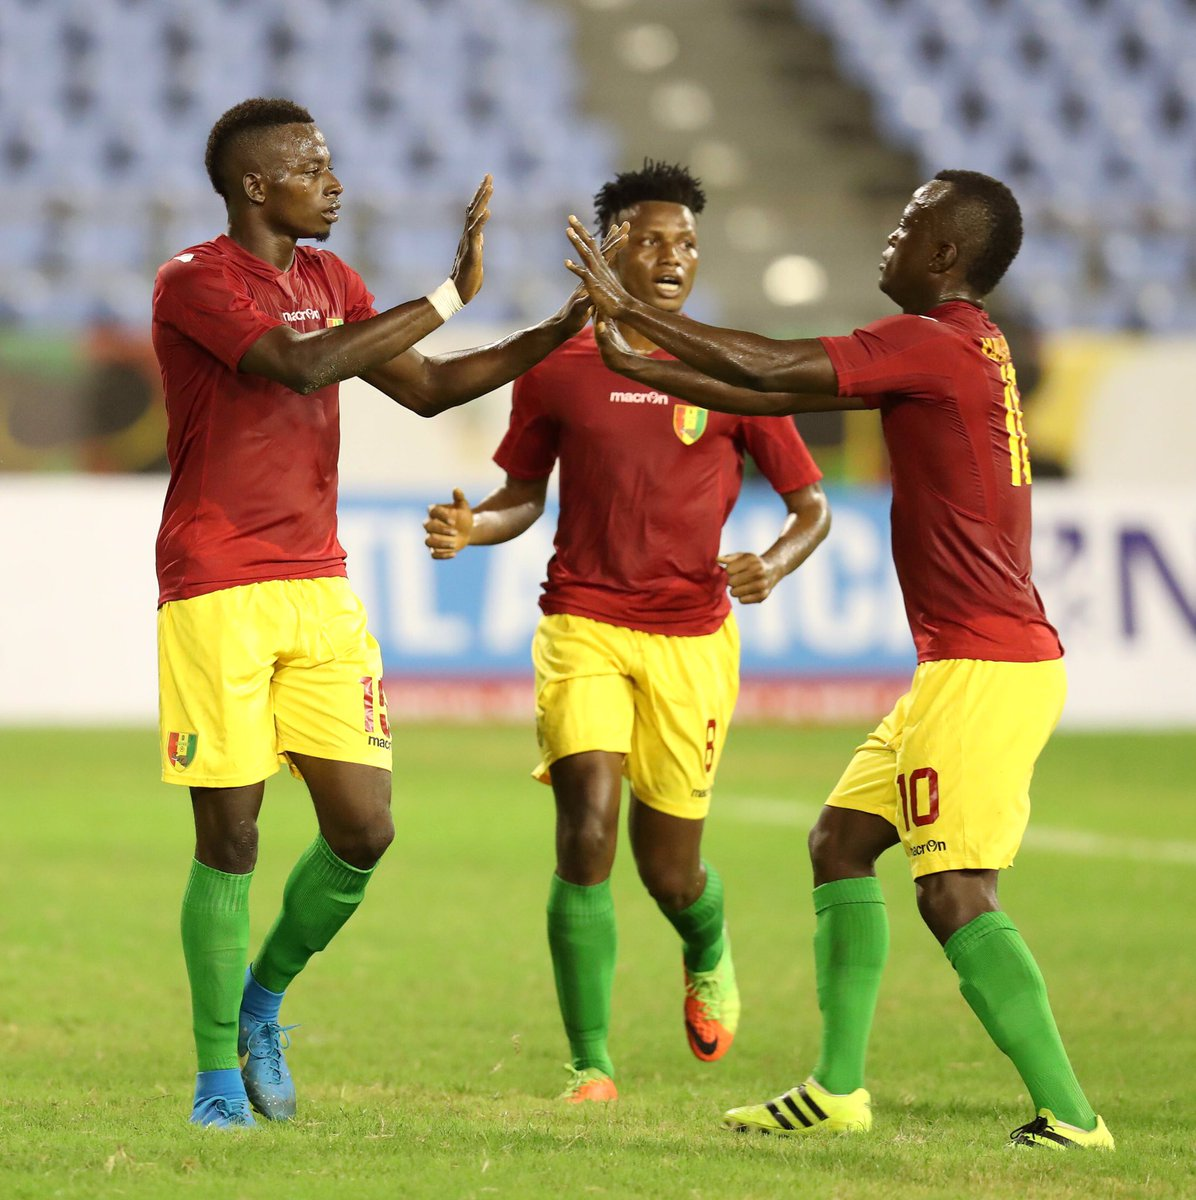 2017 FIFA U17 World Cup: Guinea eliminated after defeat to Germany